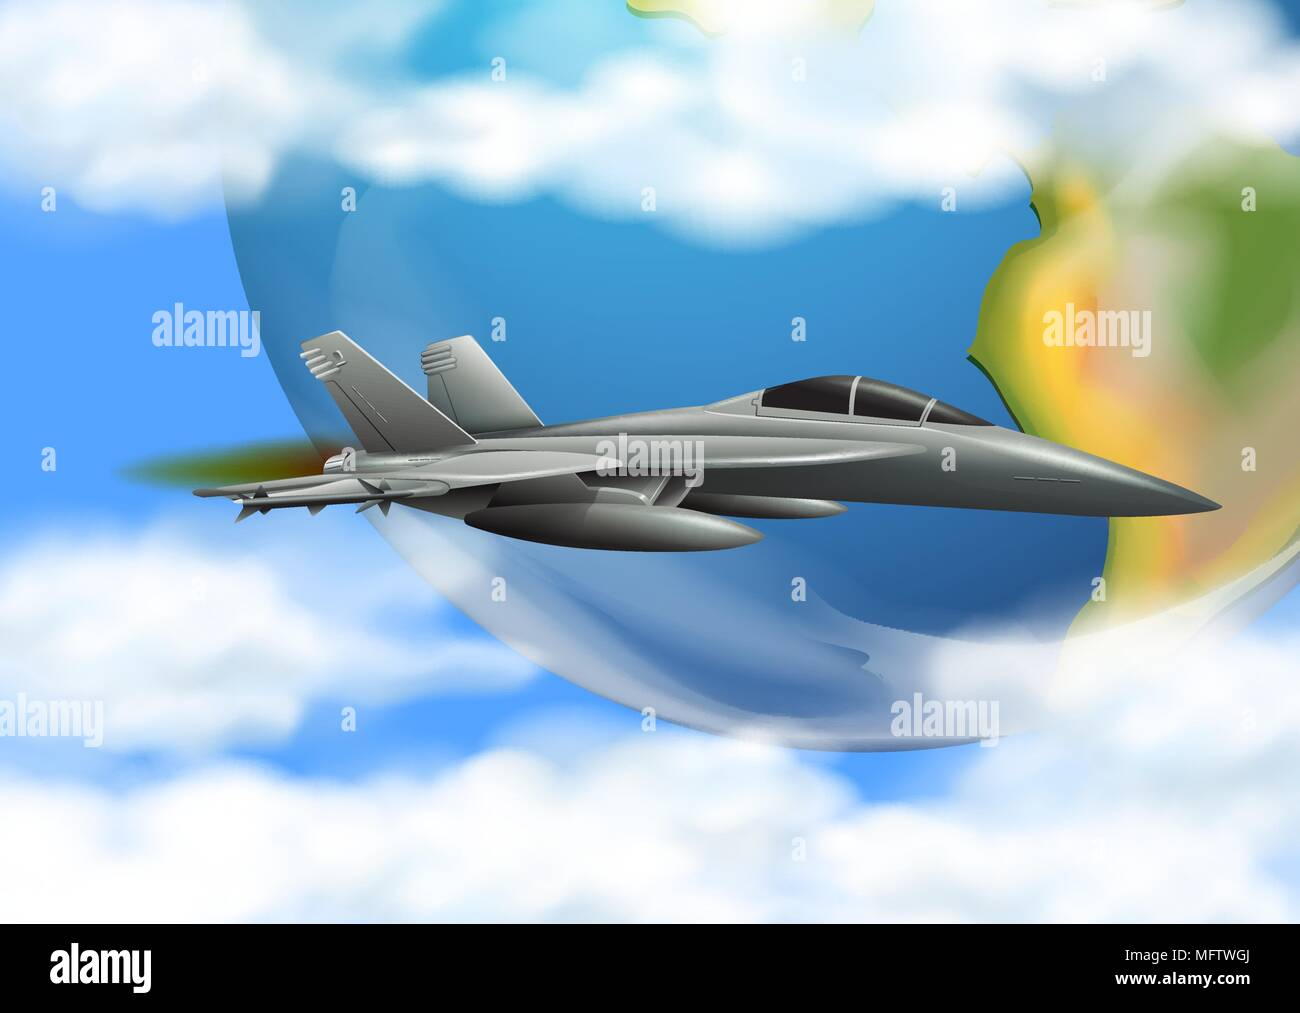 Army Airforce on the Sky illustration Stock Vector